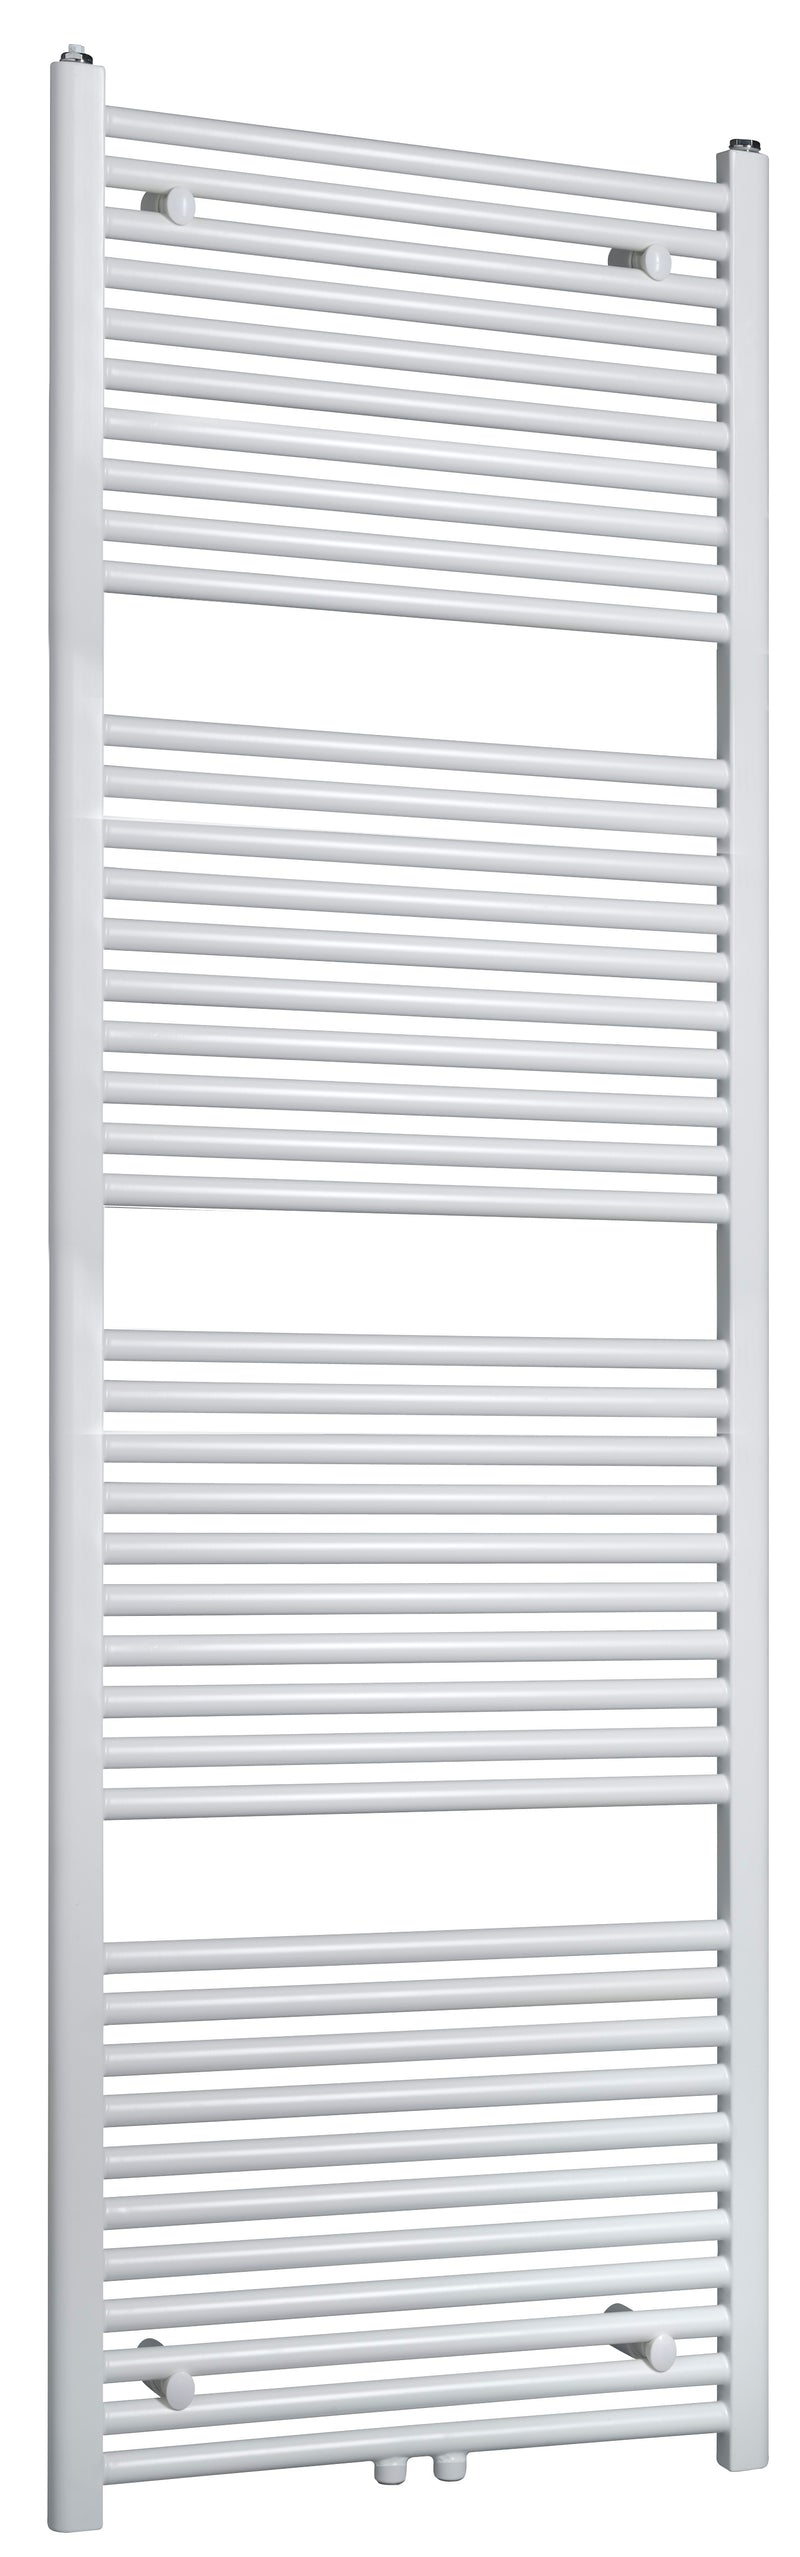 Best-Design Zero radiator recht model 1800x600mm